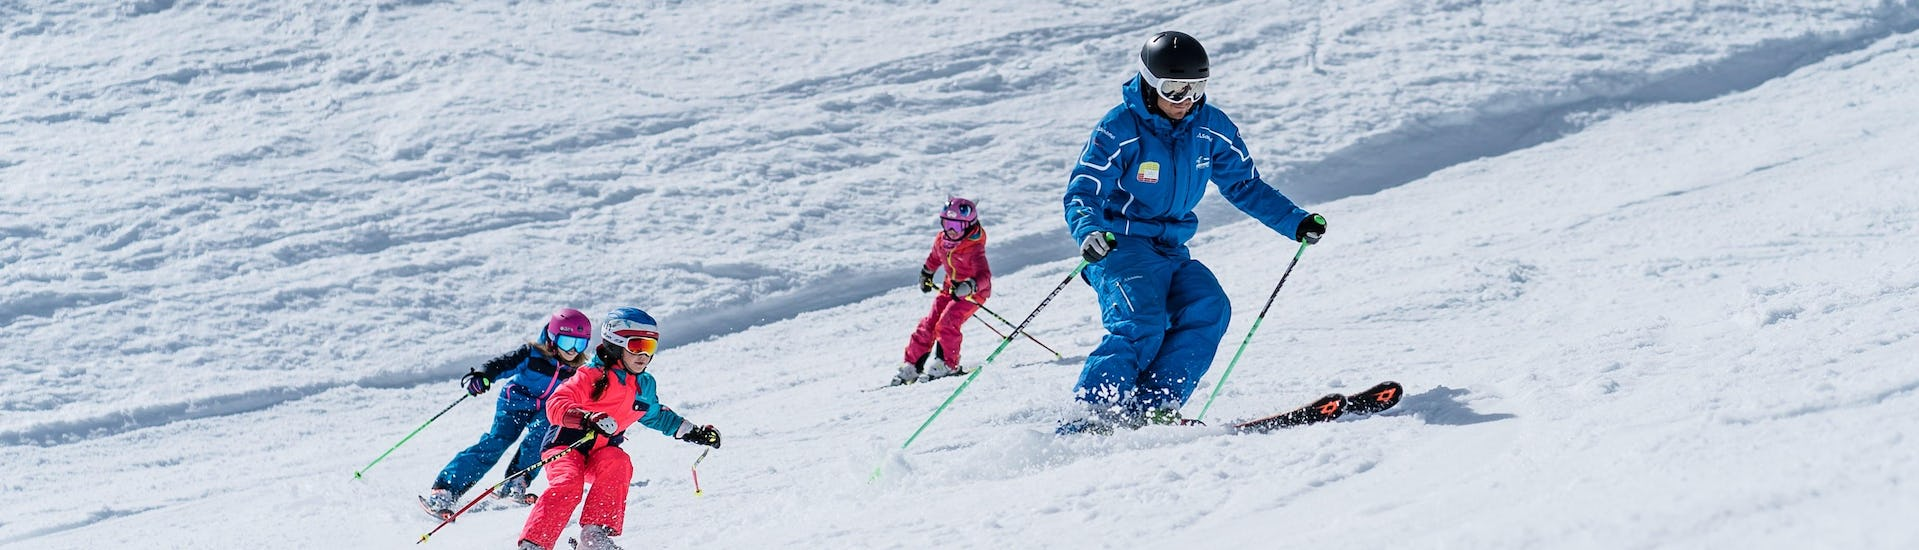 Ski Lessons Kids incl. equipment (6-14 years) - All Levels